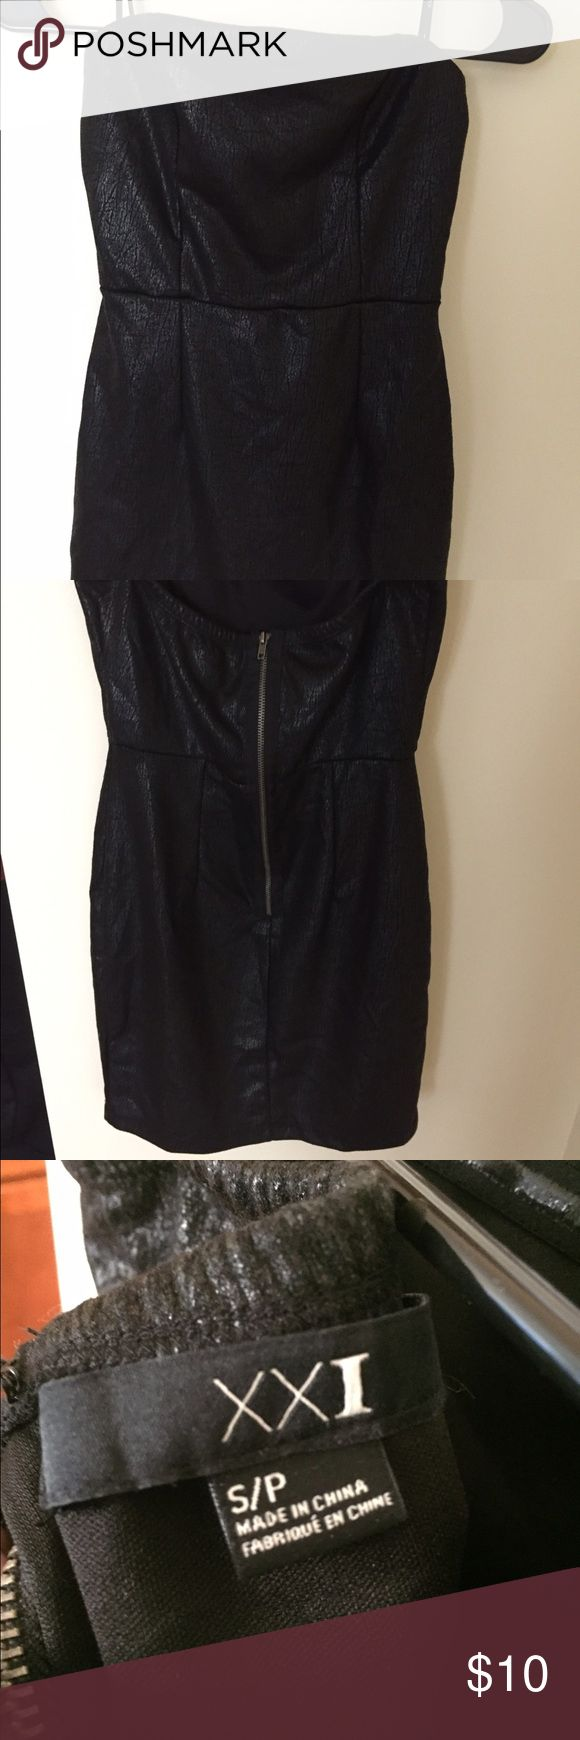 Black and silver mini dress F21. Never worn! NWOT black mini dress from forever 21. Super cute with a silvery sheen and leather like feel.  Make an offer! Forever 21 Dresses Mini